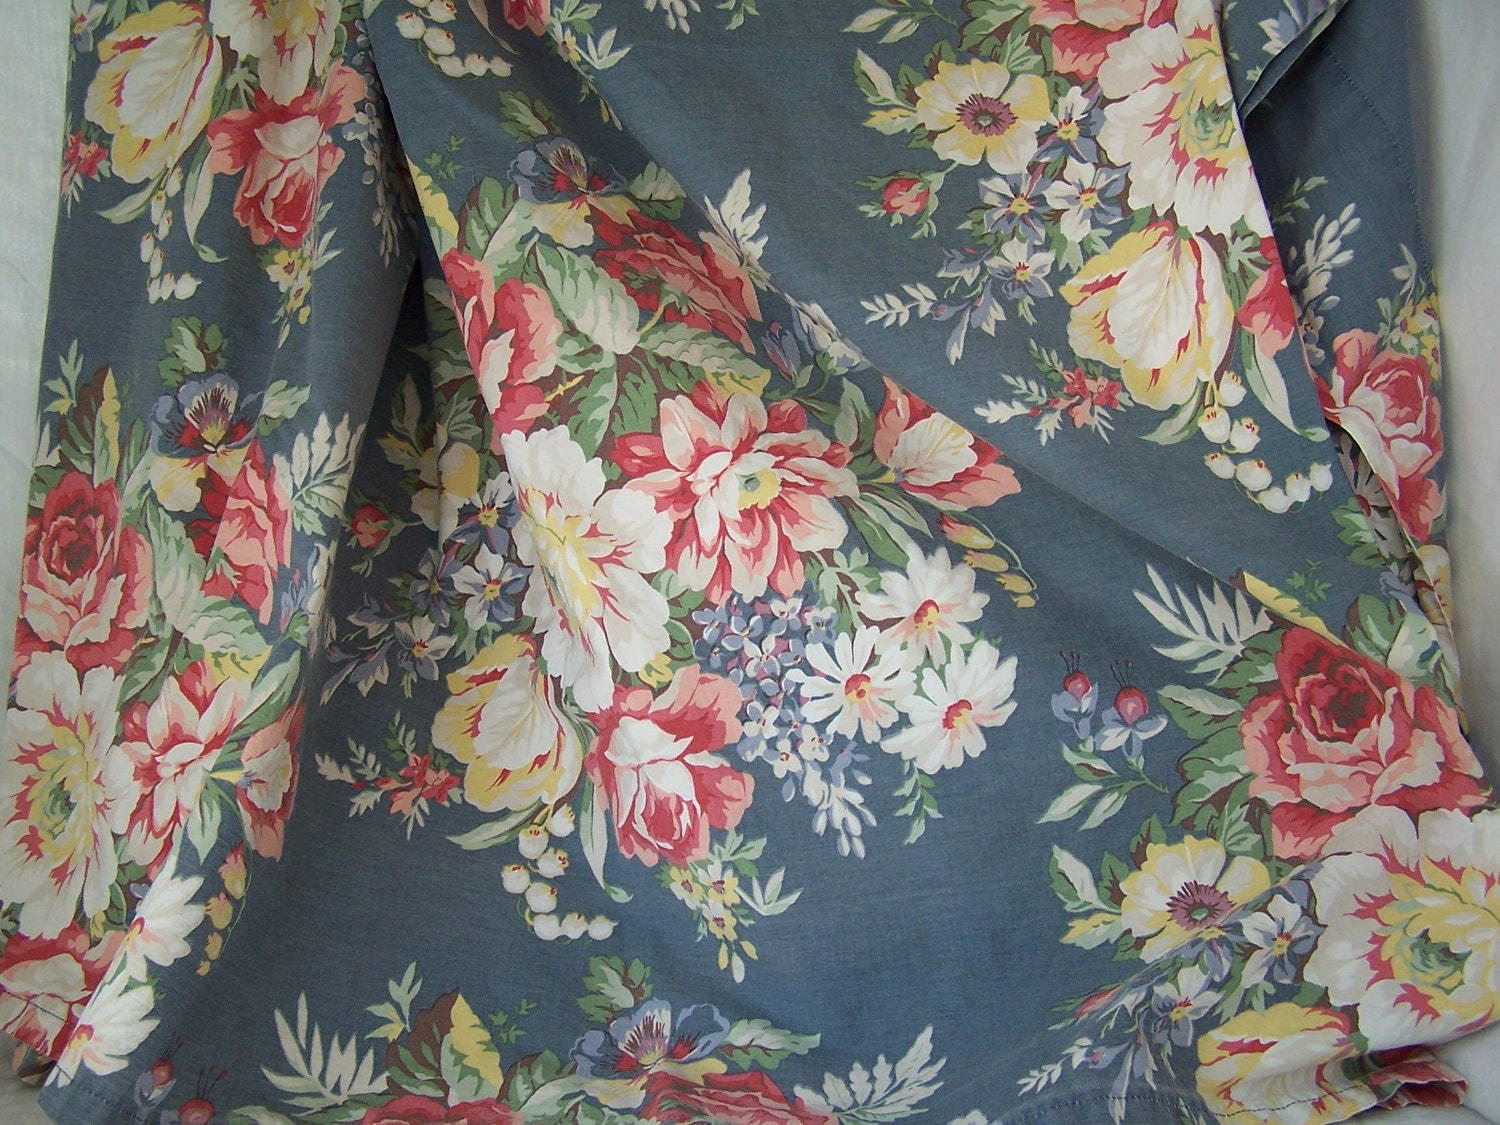 Ralph lauren floral bedding kimberly blue floral has a